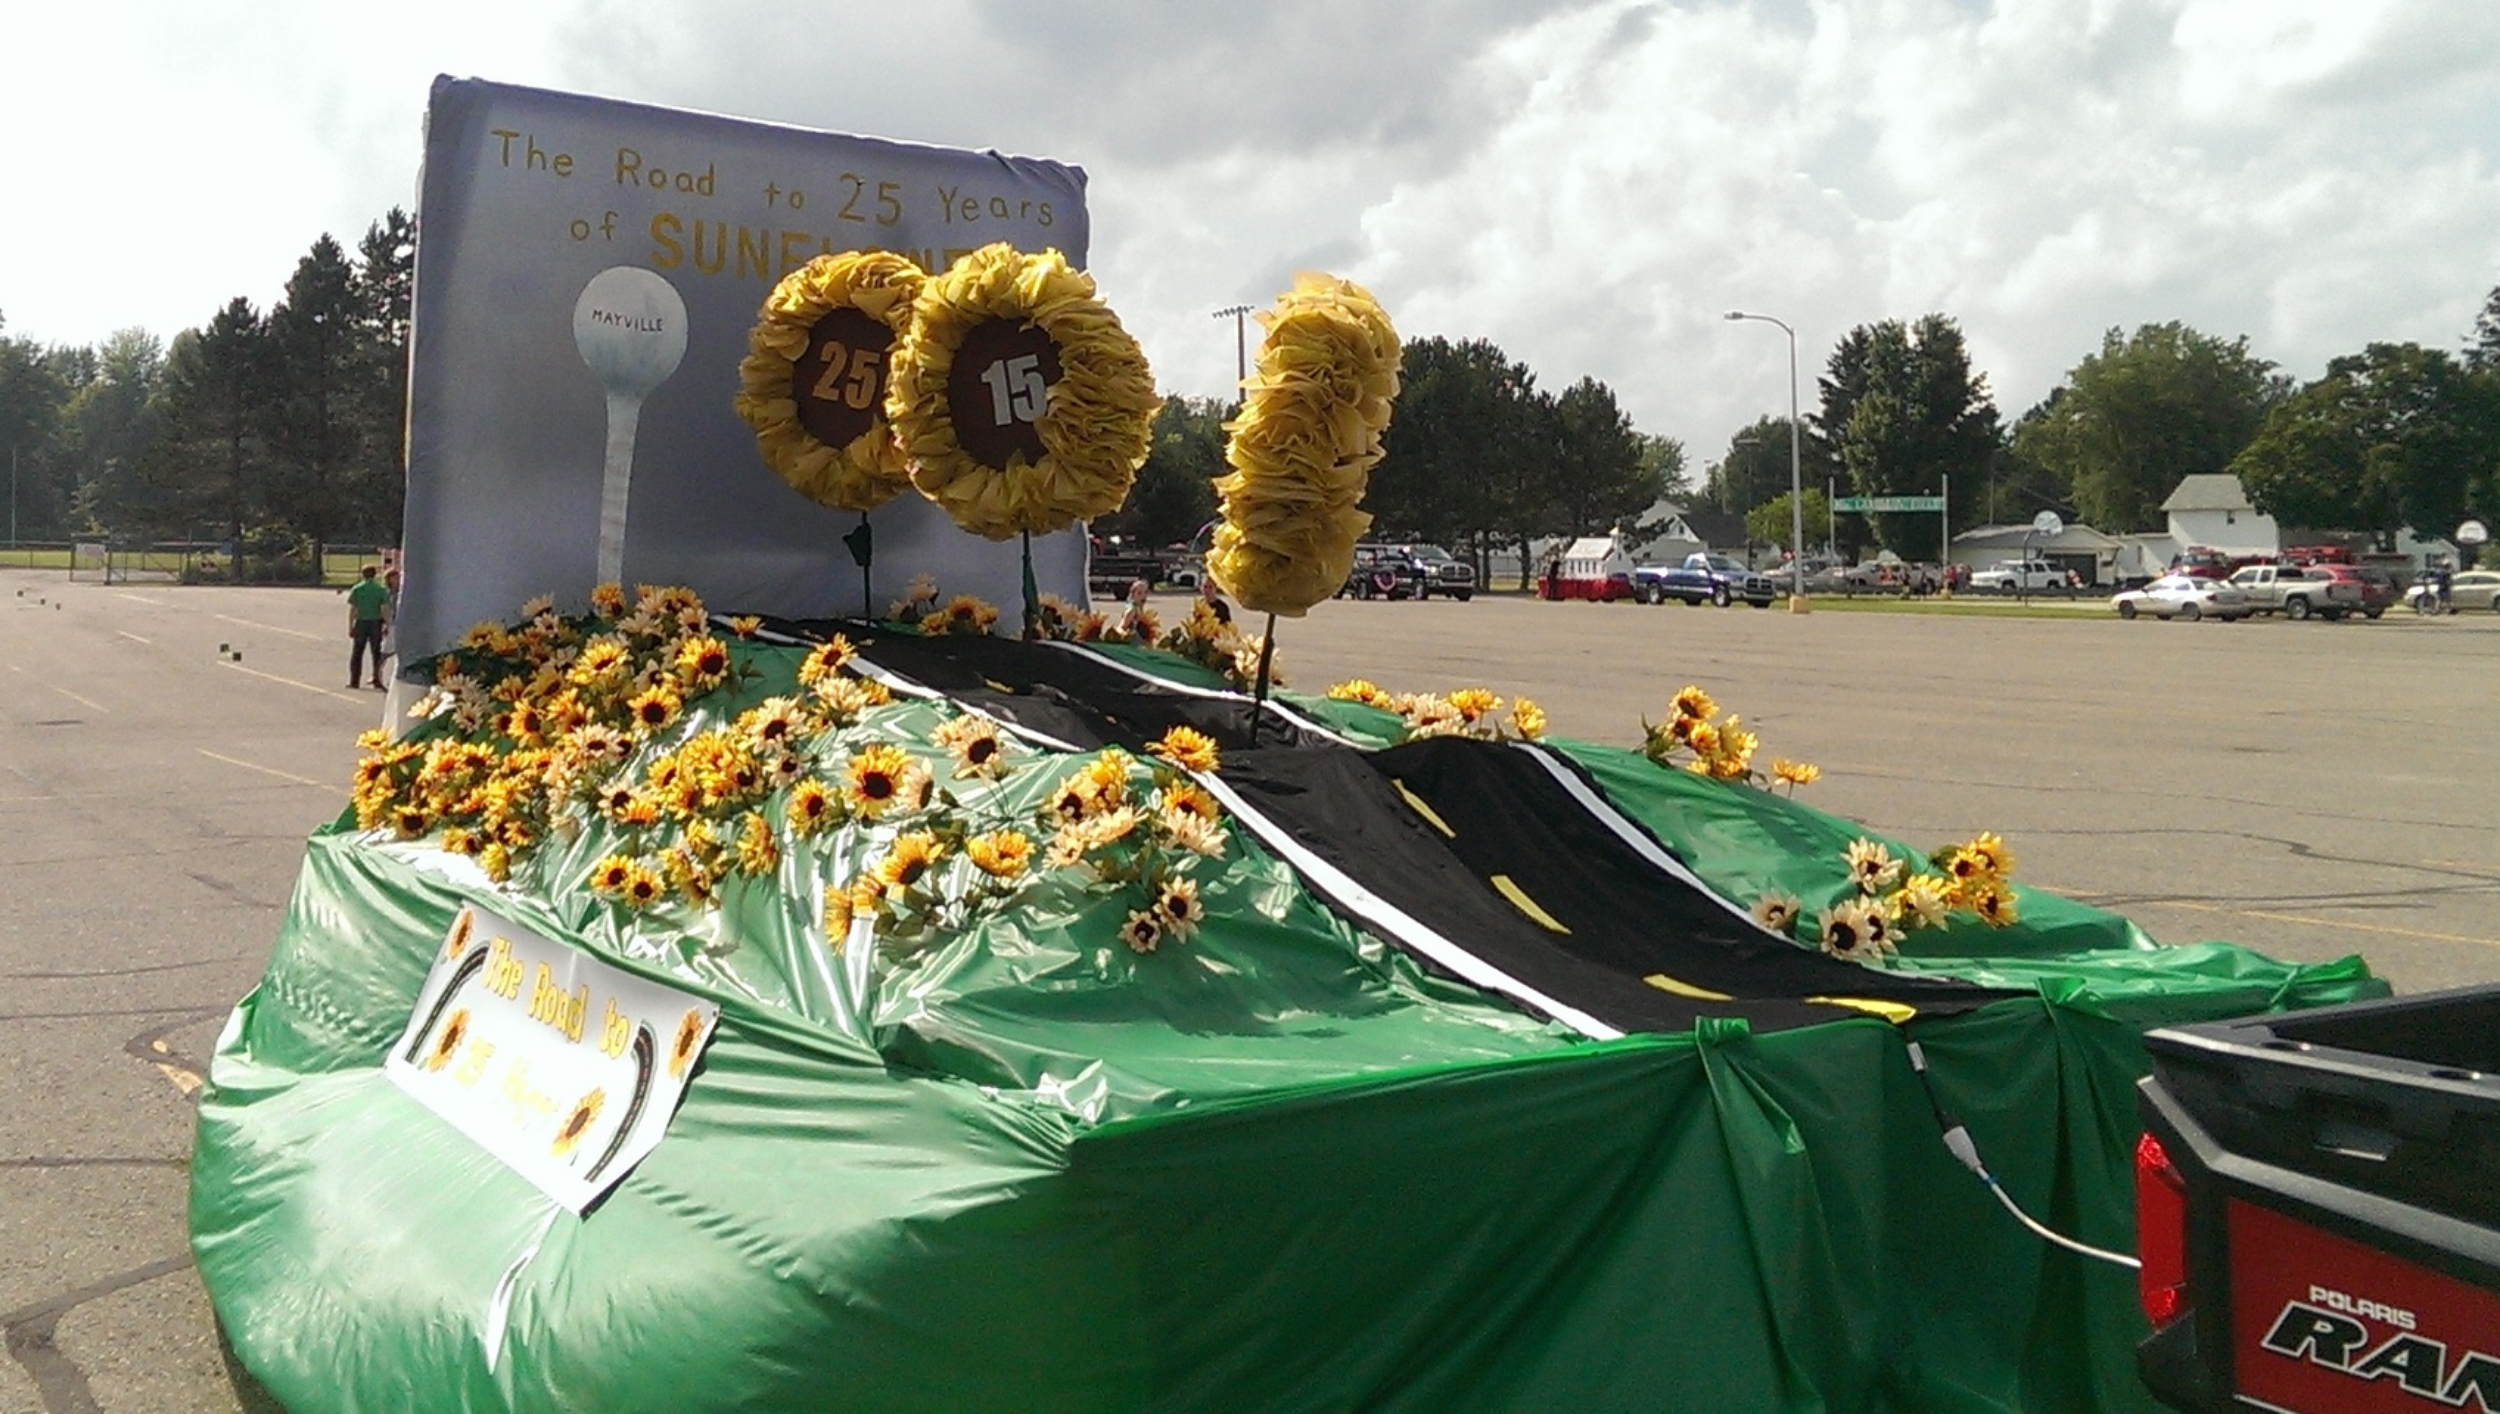 Our float!